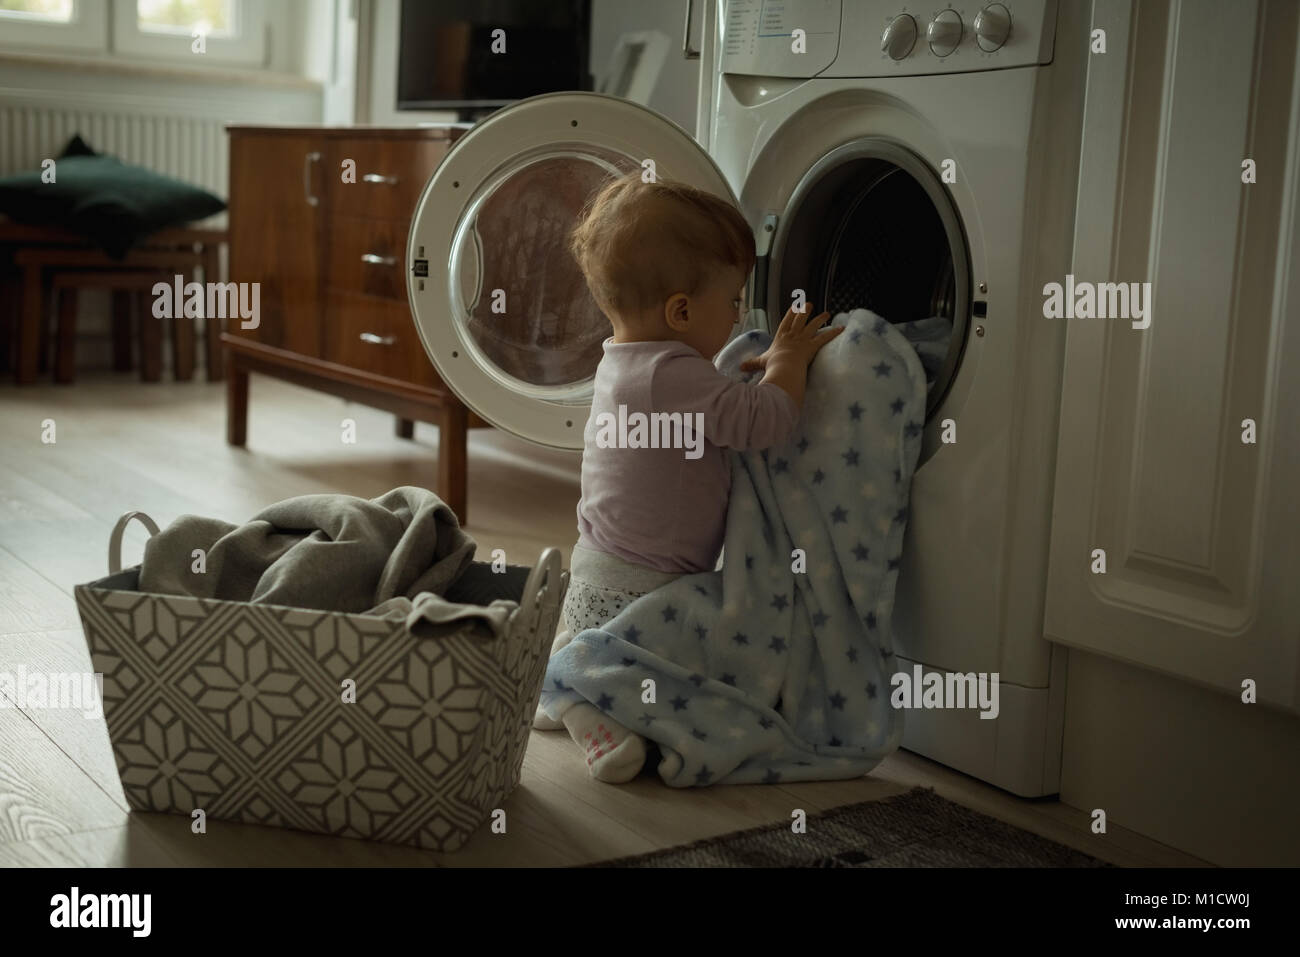 Baby putting clothes inside the washing machine - Stock Image